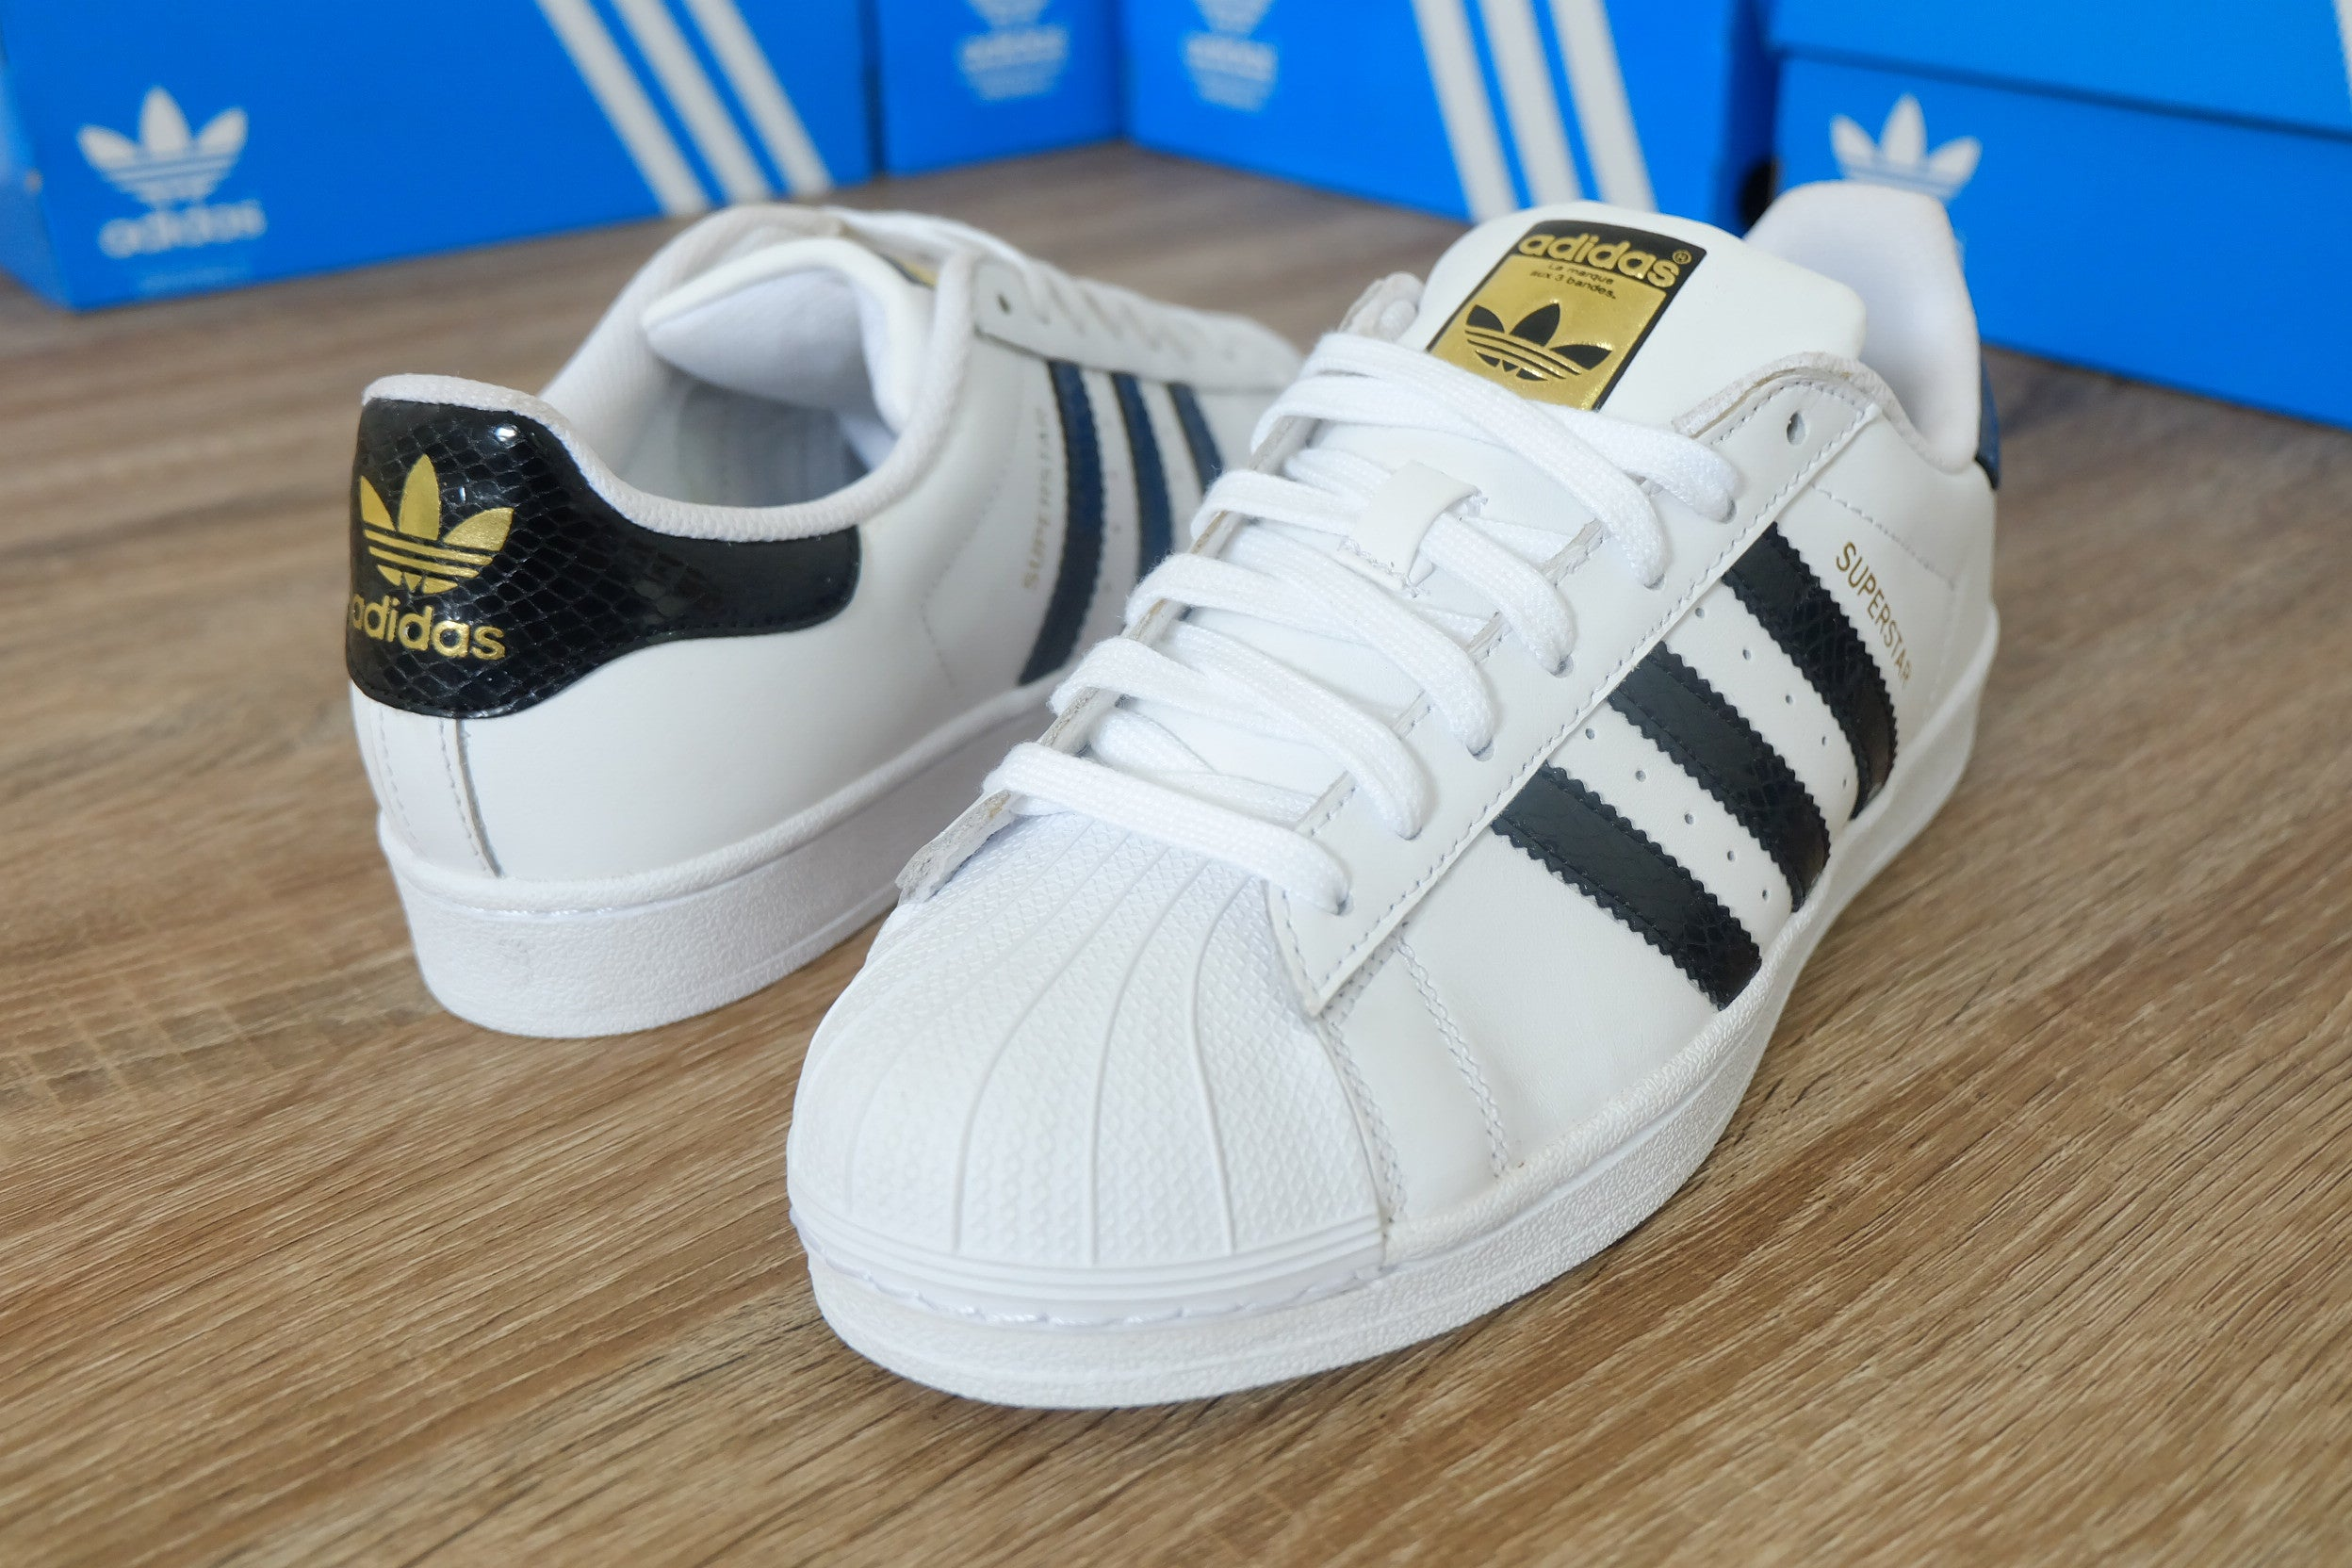 990ad92d551c9 ... promo code for adidas superstar diamond adidas superstar foundation  white snake 40 2 3 hingga 44